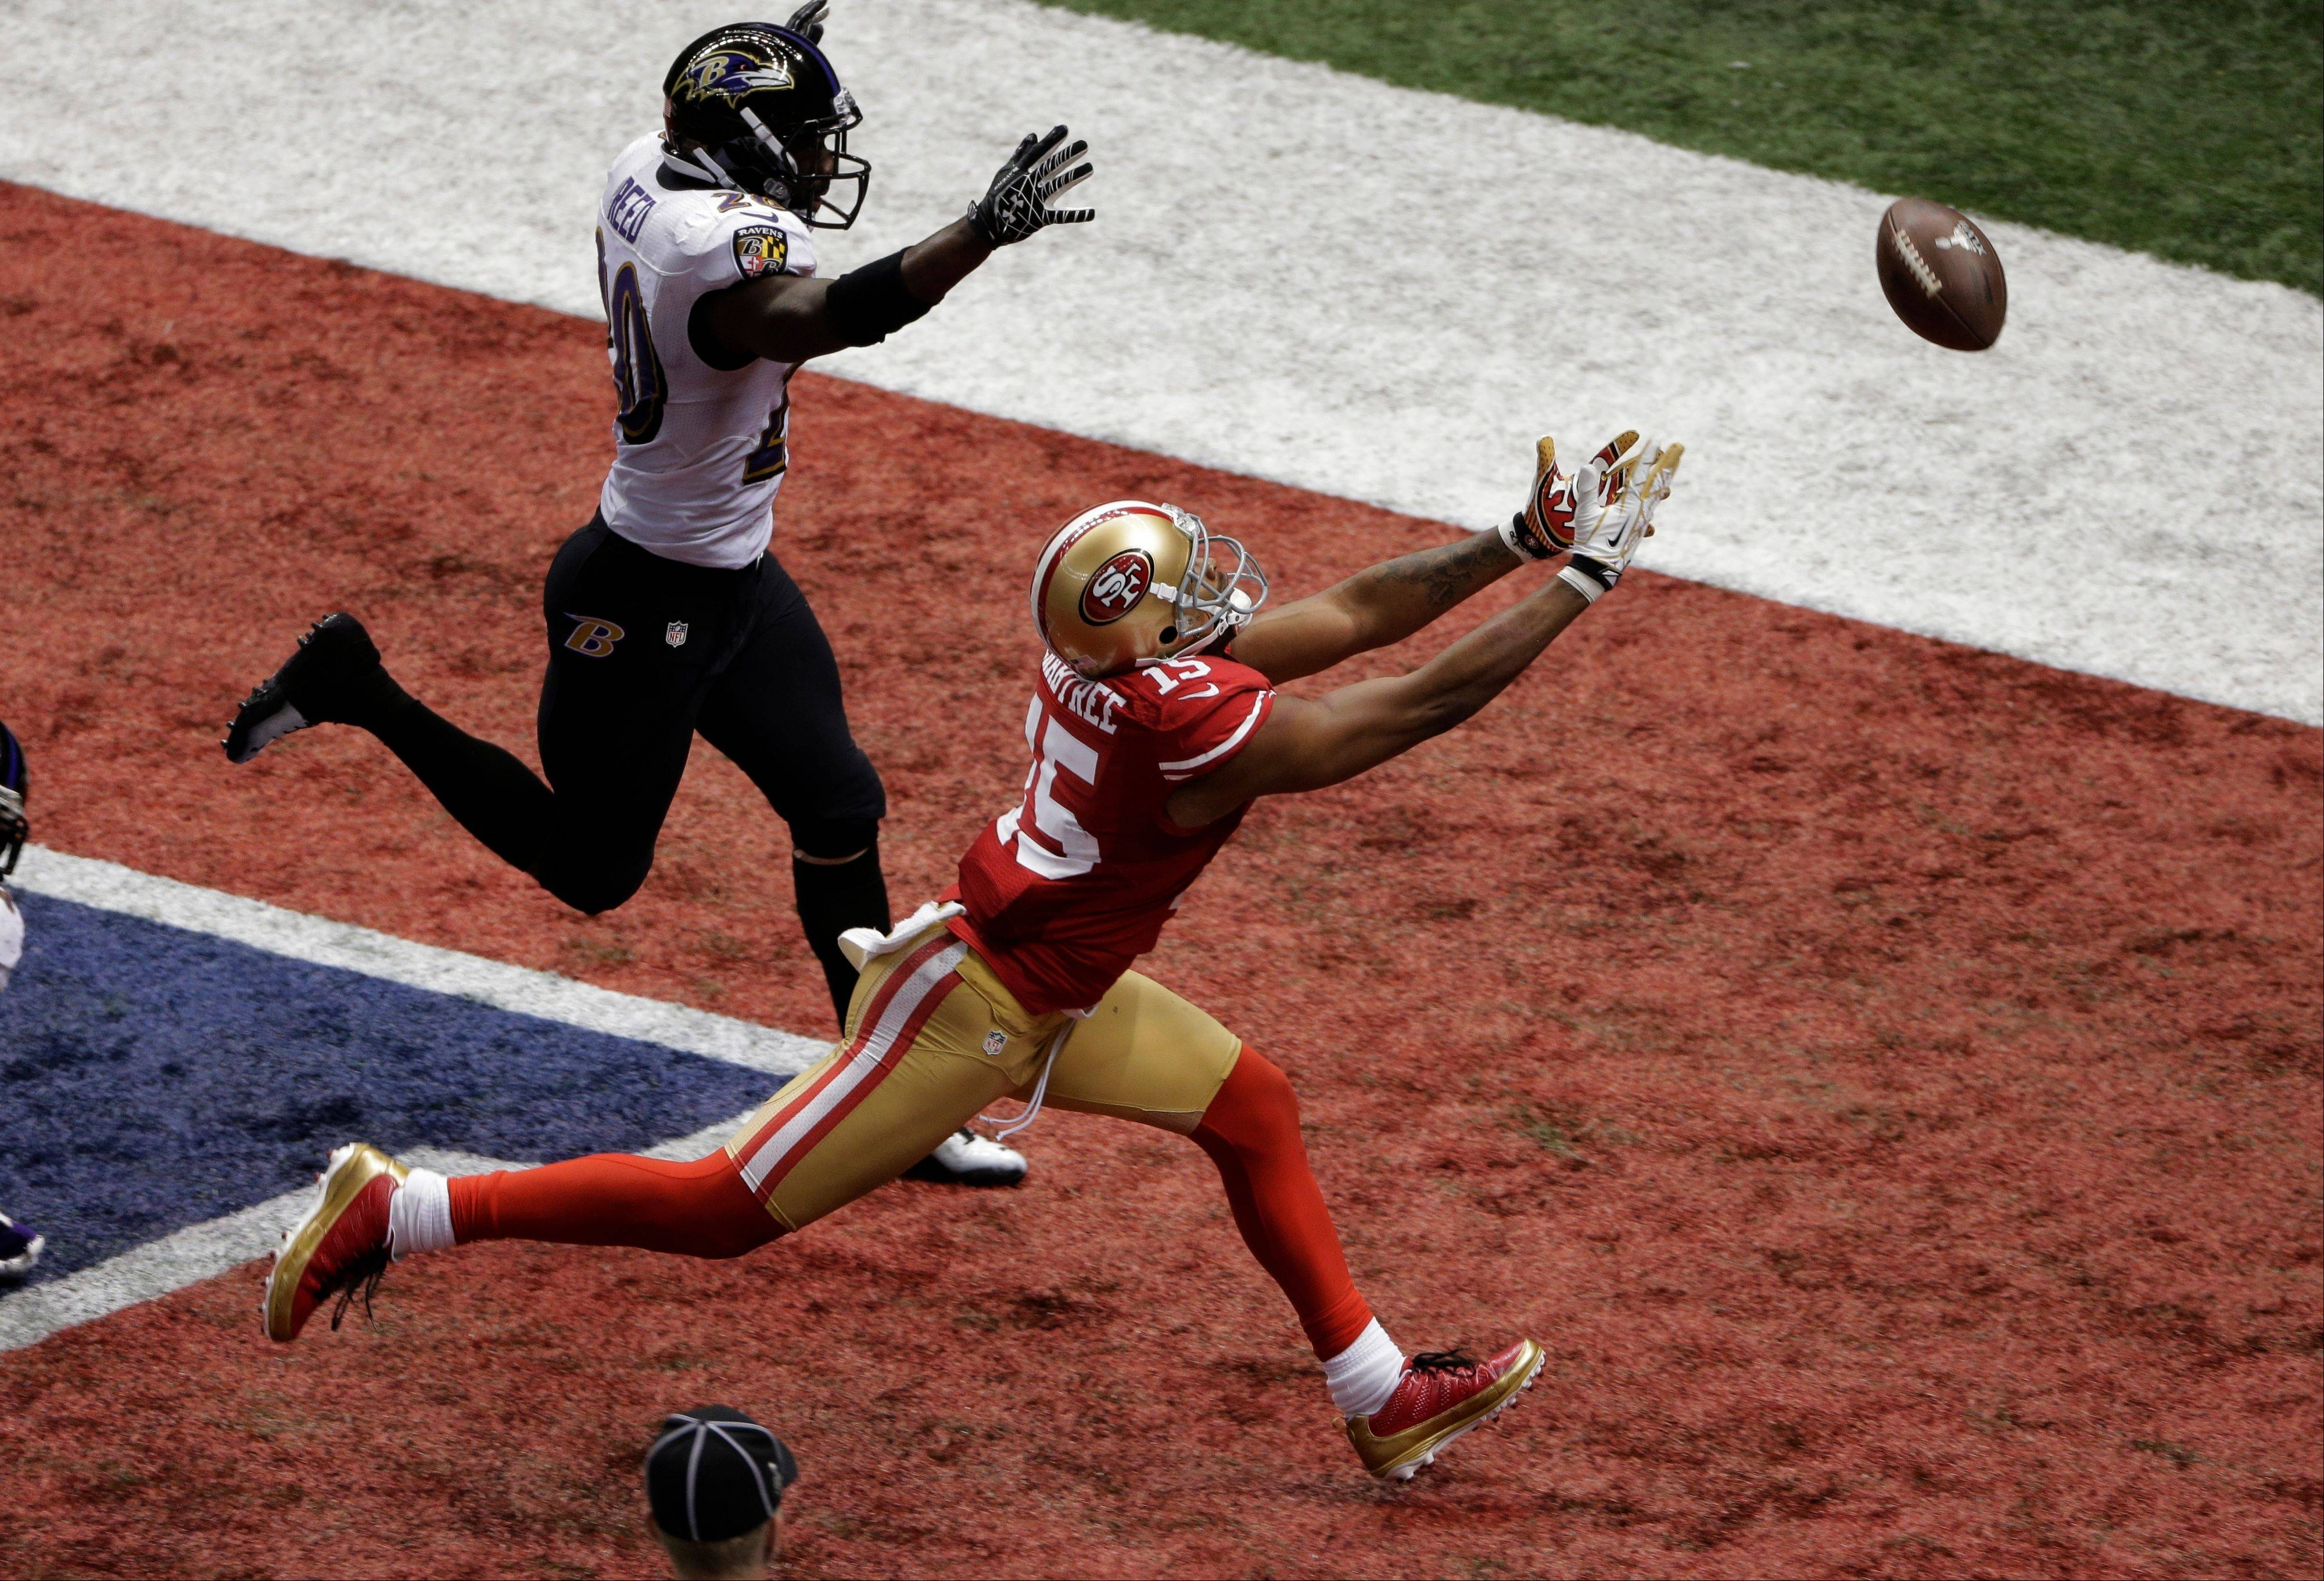 A pass falls just out of reach of 49ers wide receiver Michael Crabtree on fourth-and-goal late in Super Bowl XLVII.